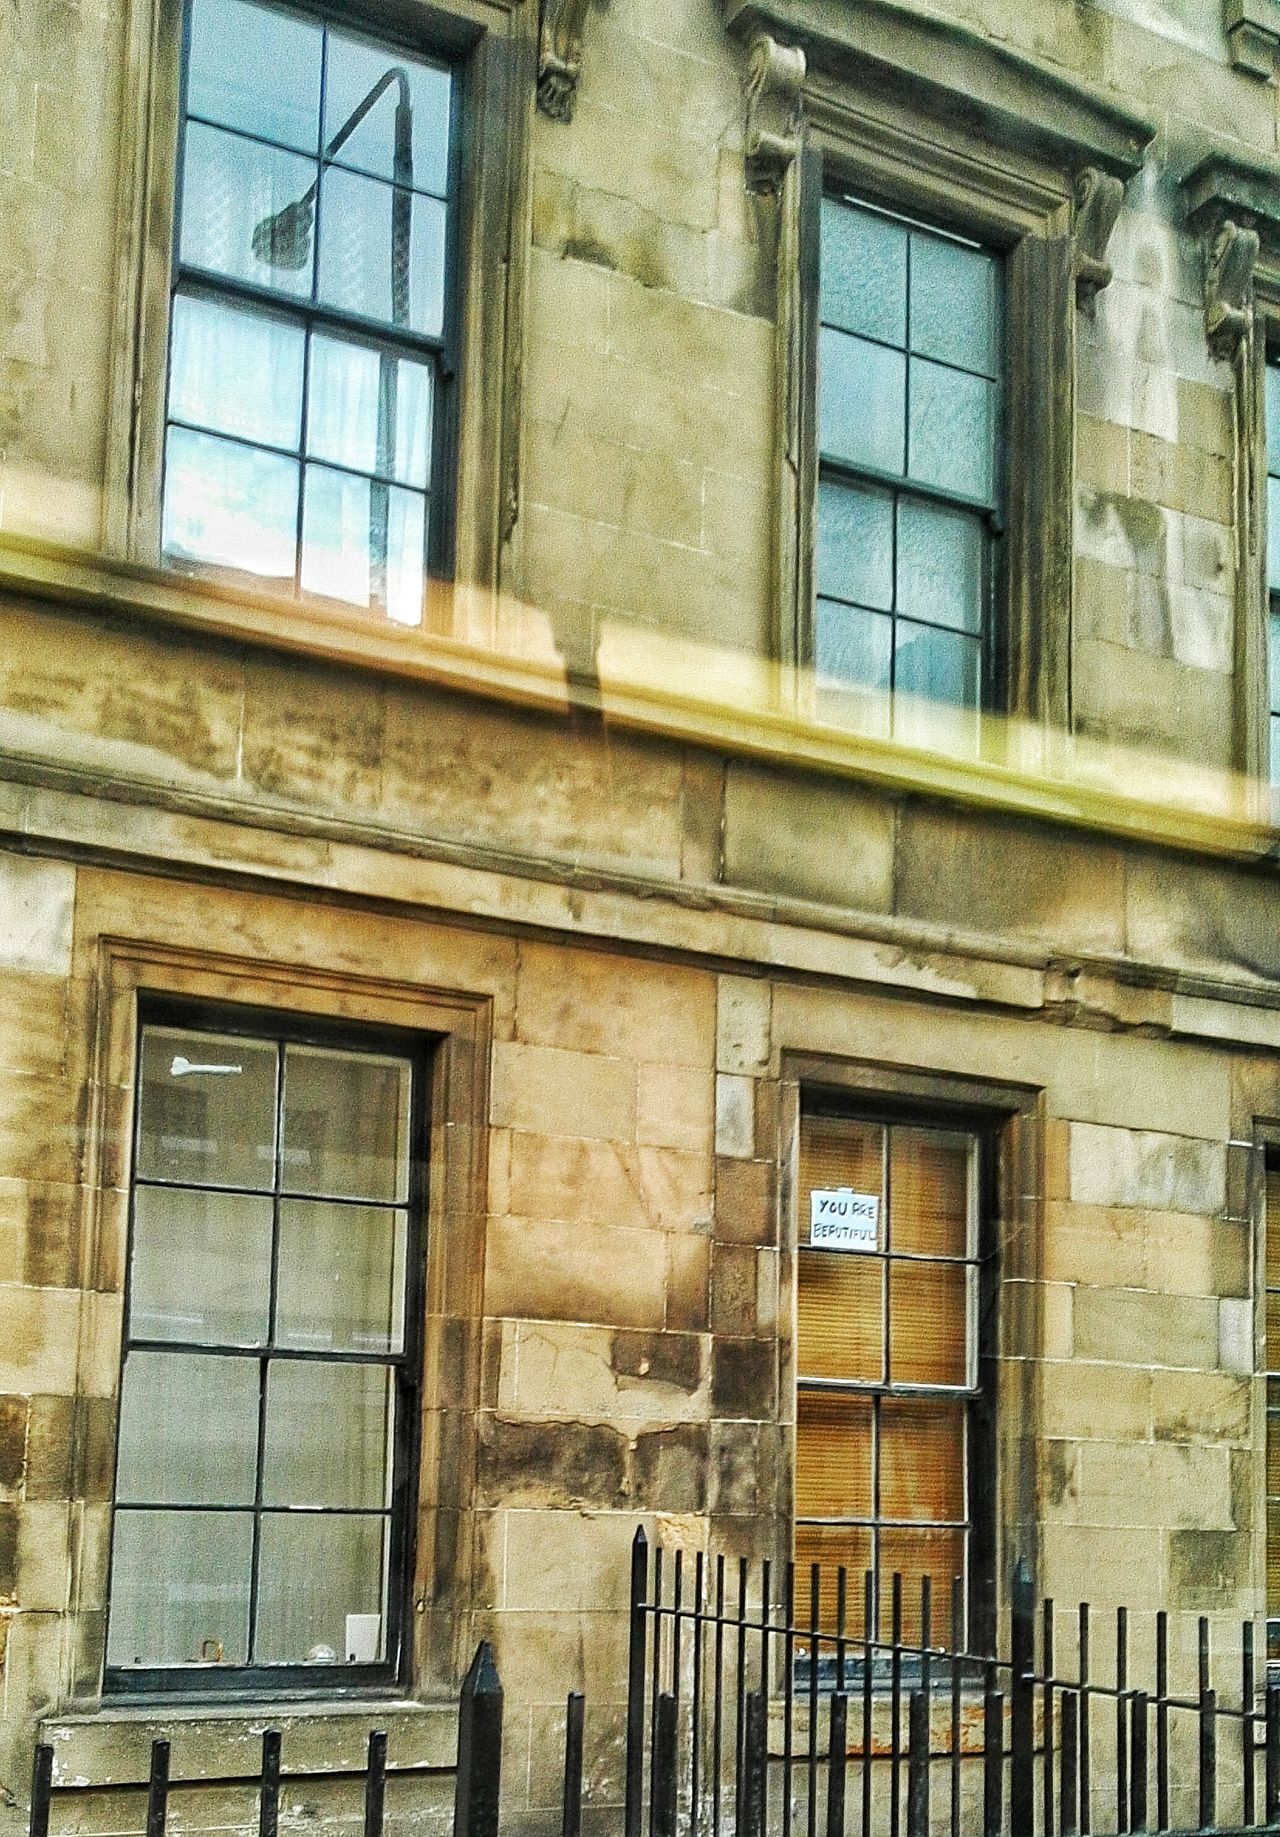 Window Architecture Building Exterior Built Structure Day Window Frame Historic History Weathered No People Exterior IAmBeautiful Youarebeautiful Randomsign Randomactsofkindness Viewfromthewindow Onabus Tenements Bloodylampposts